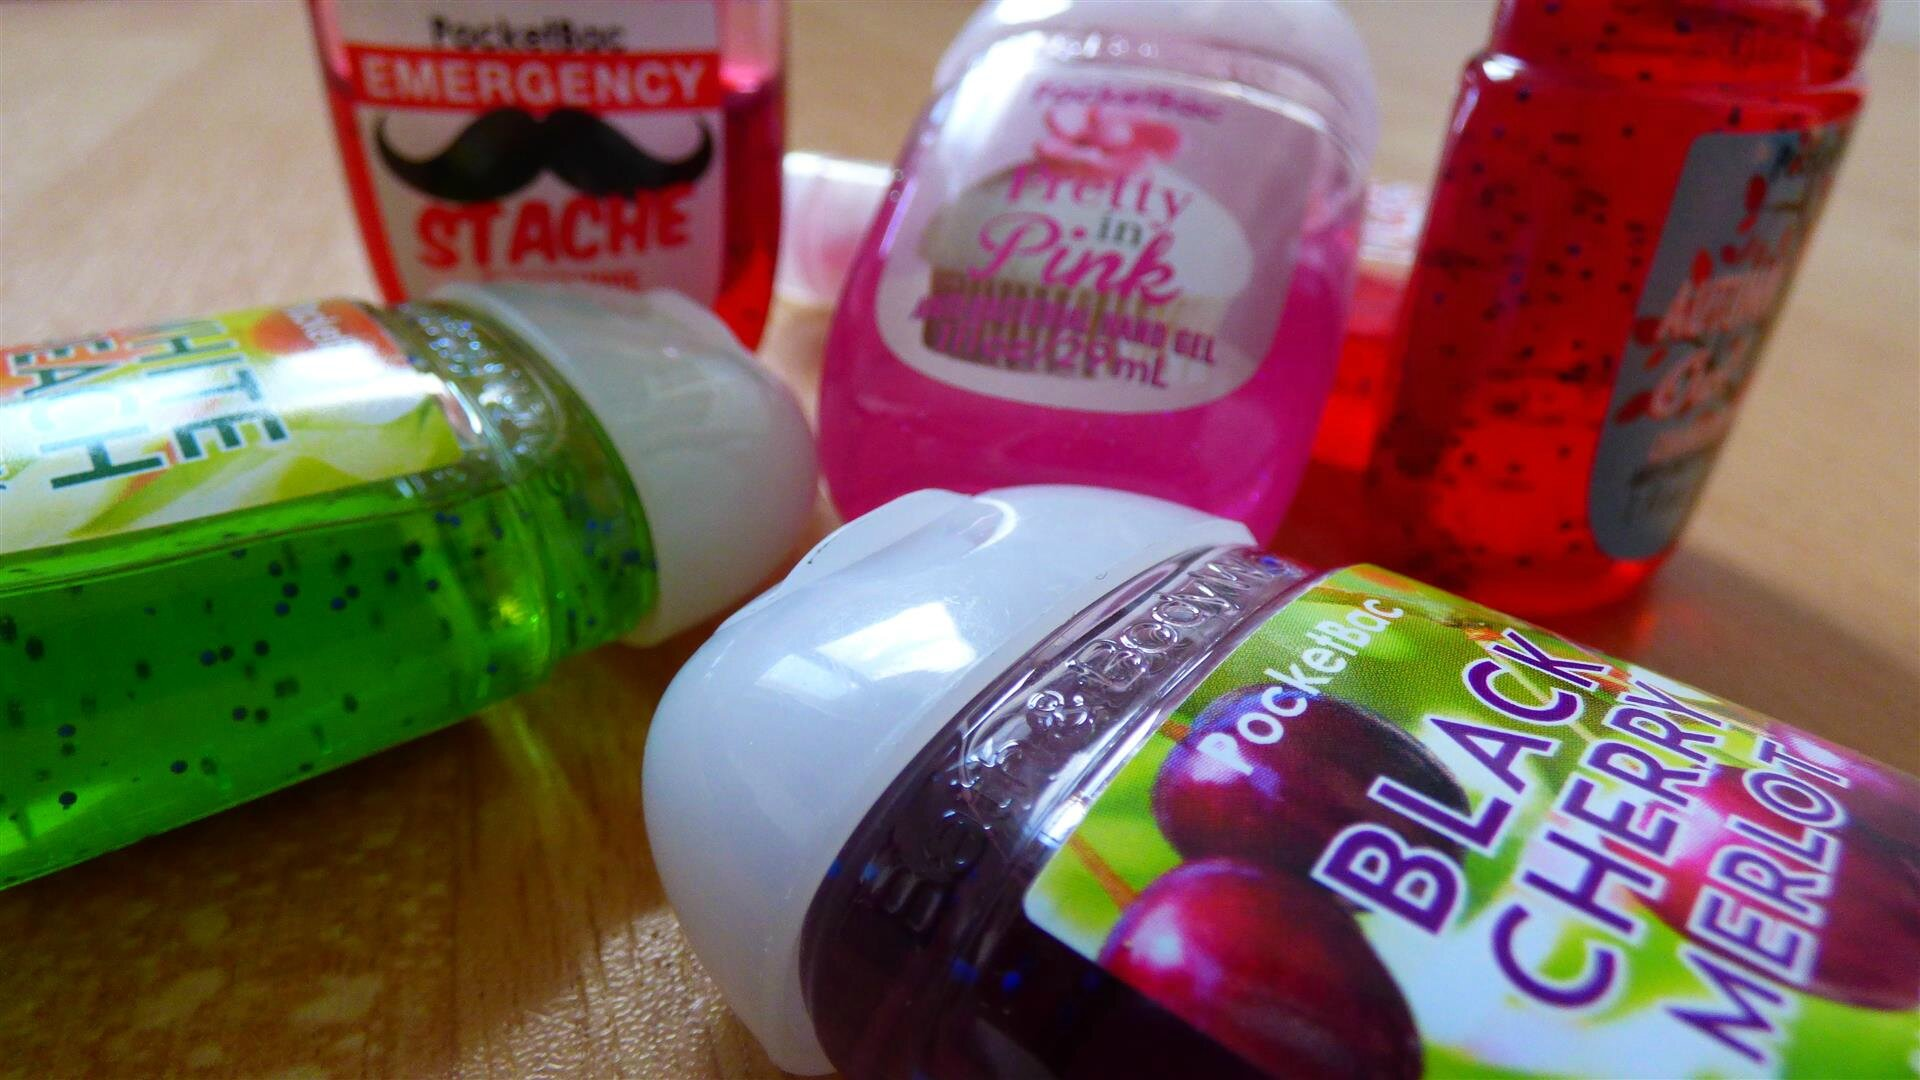 Avis sur la marque Bath and body works ♥